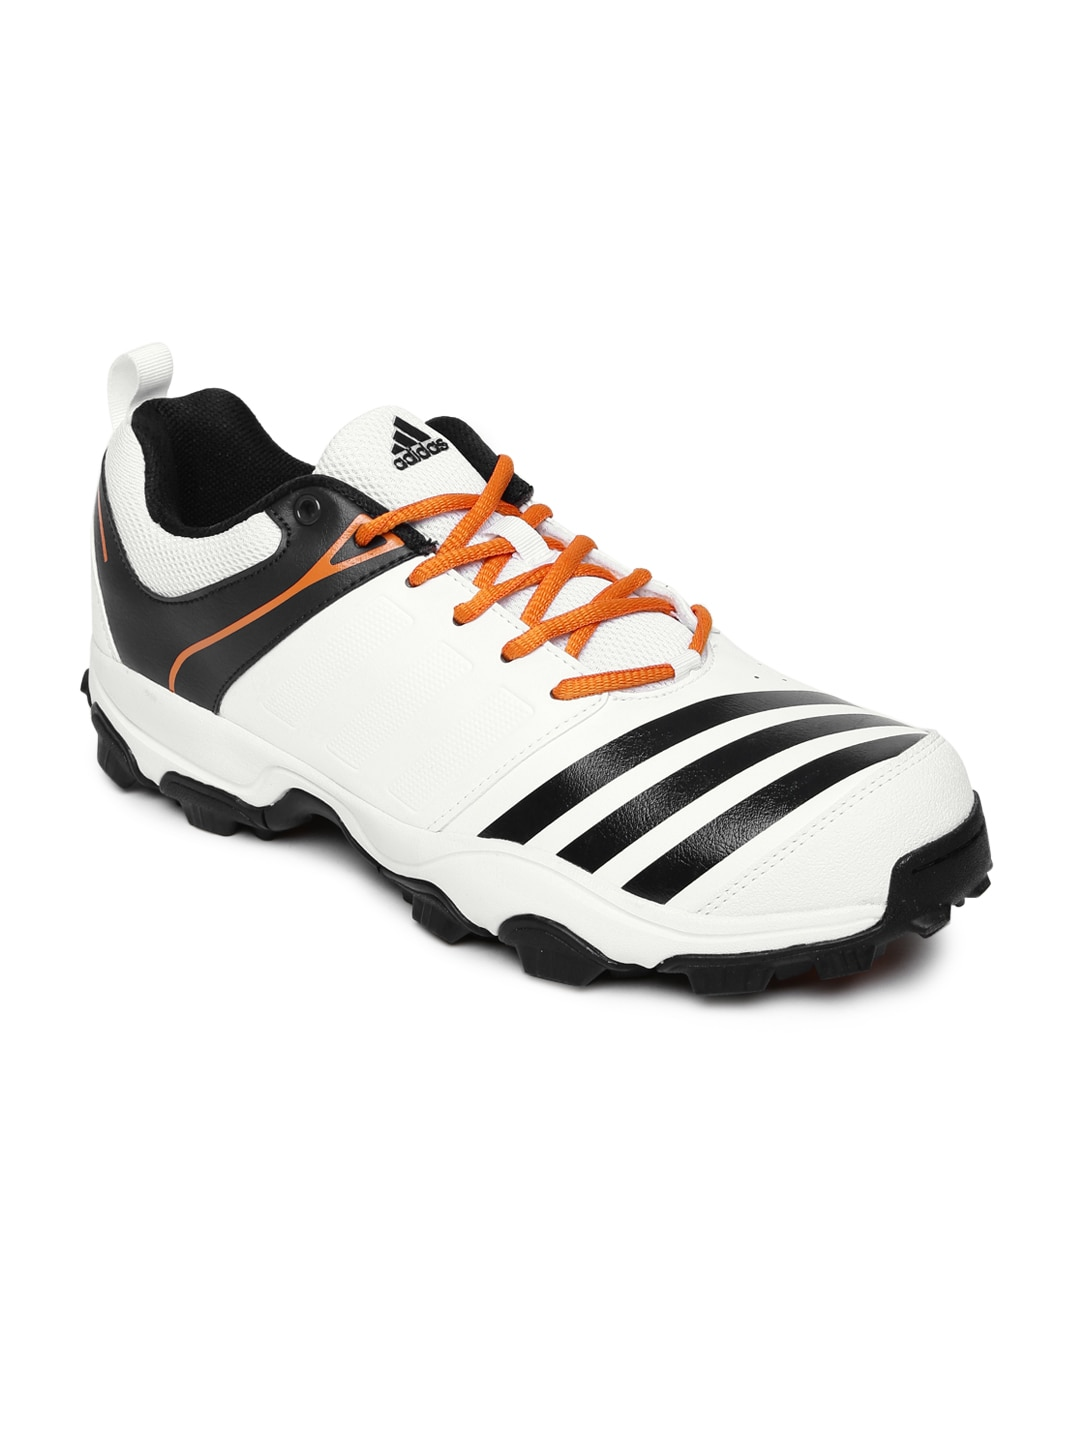 adidas 22 yards cricket scarpe india